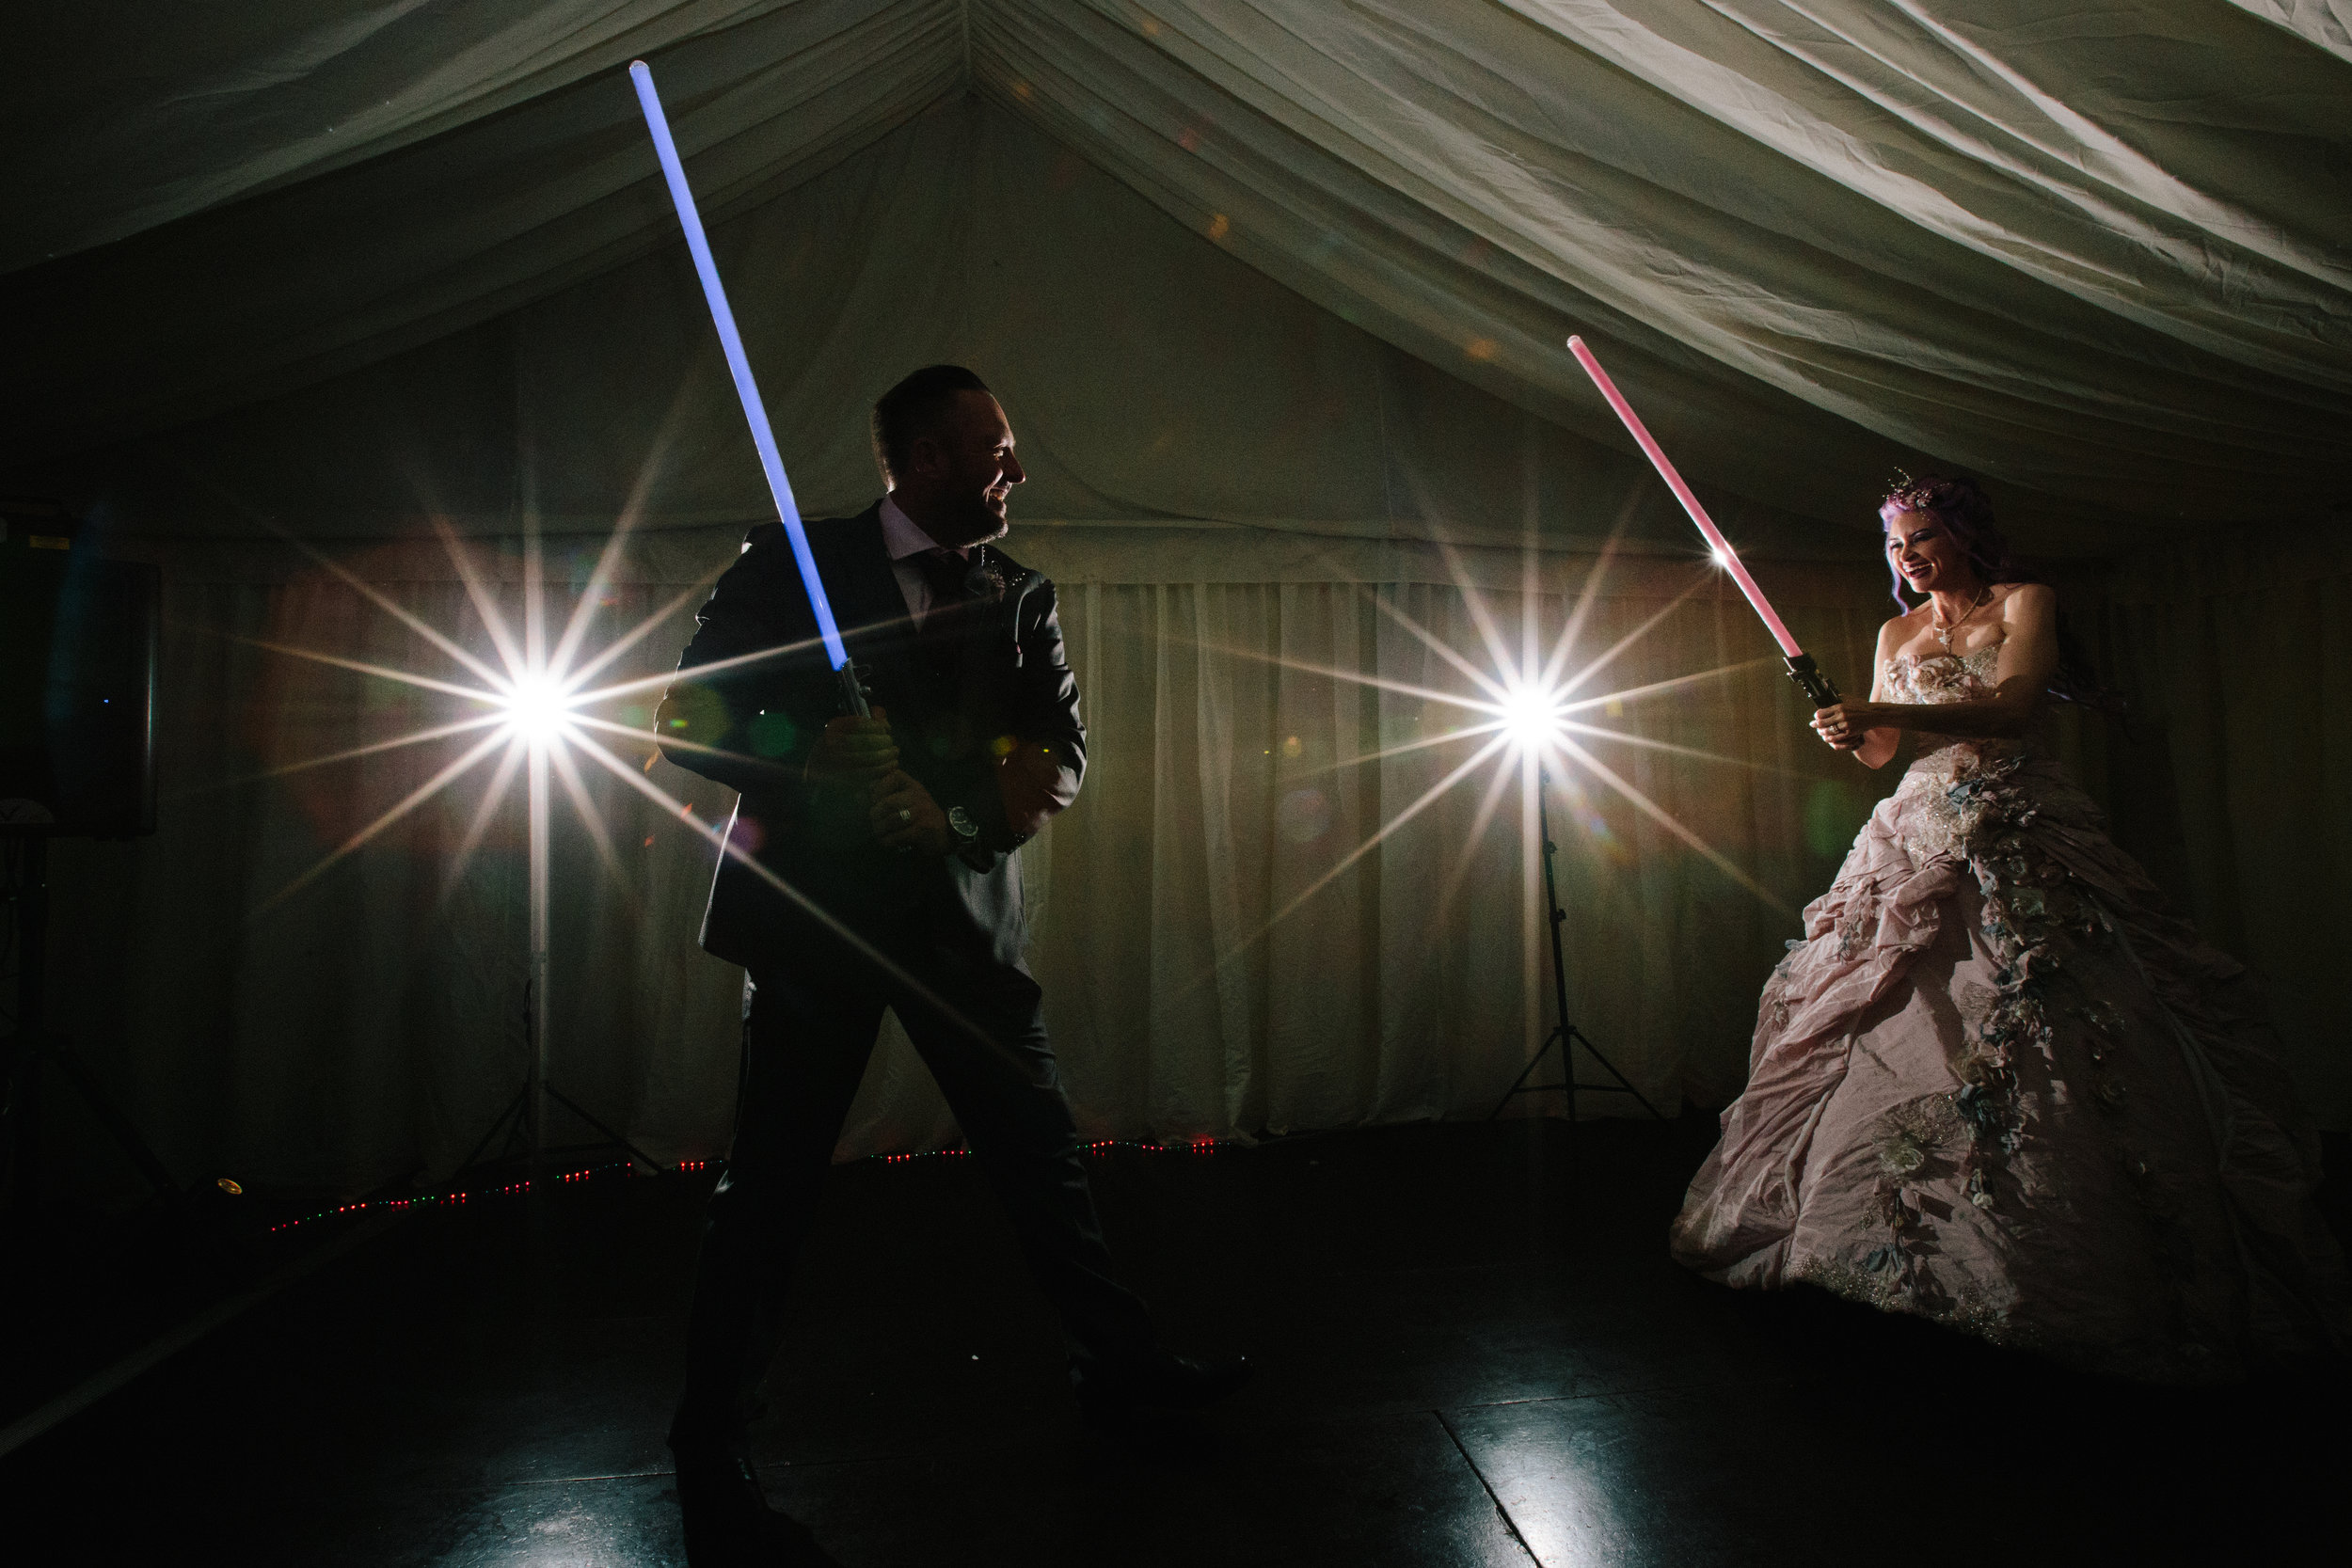 Hollwyood-characters-bride-essex-movie-theme-wedding-first-dance-light-sabre-1